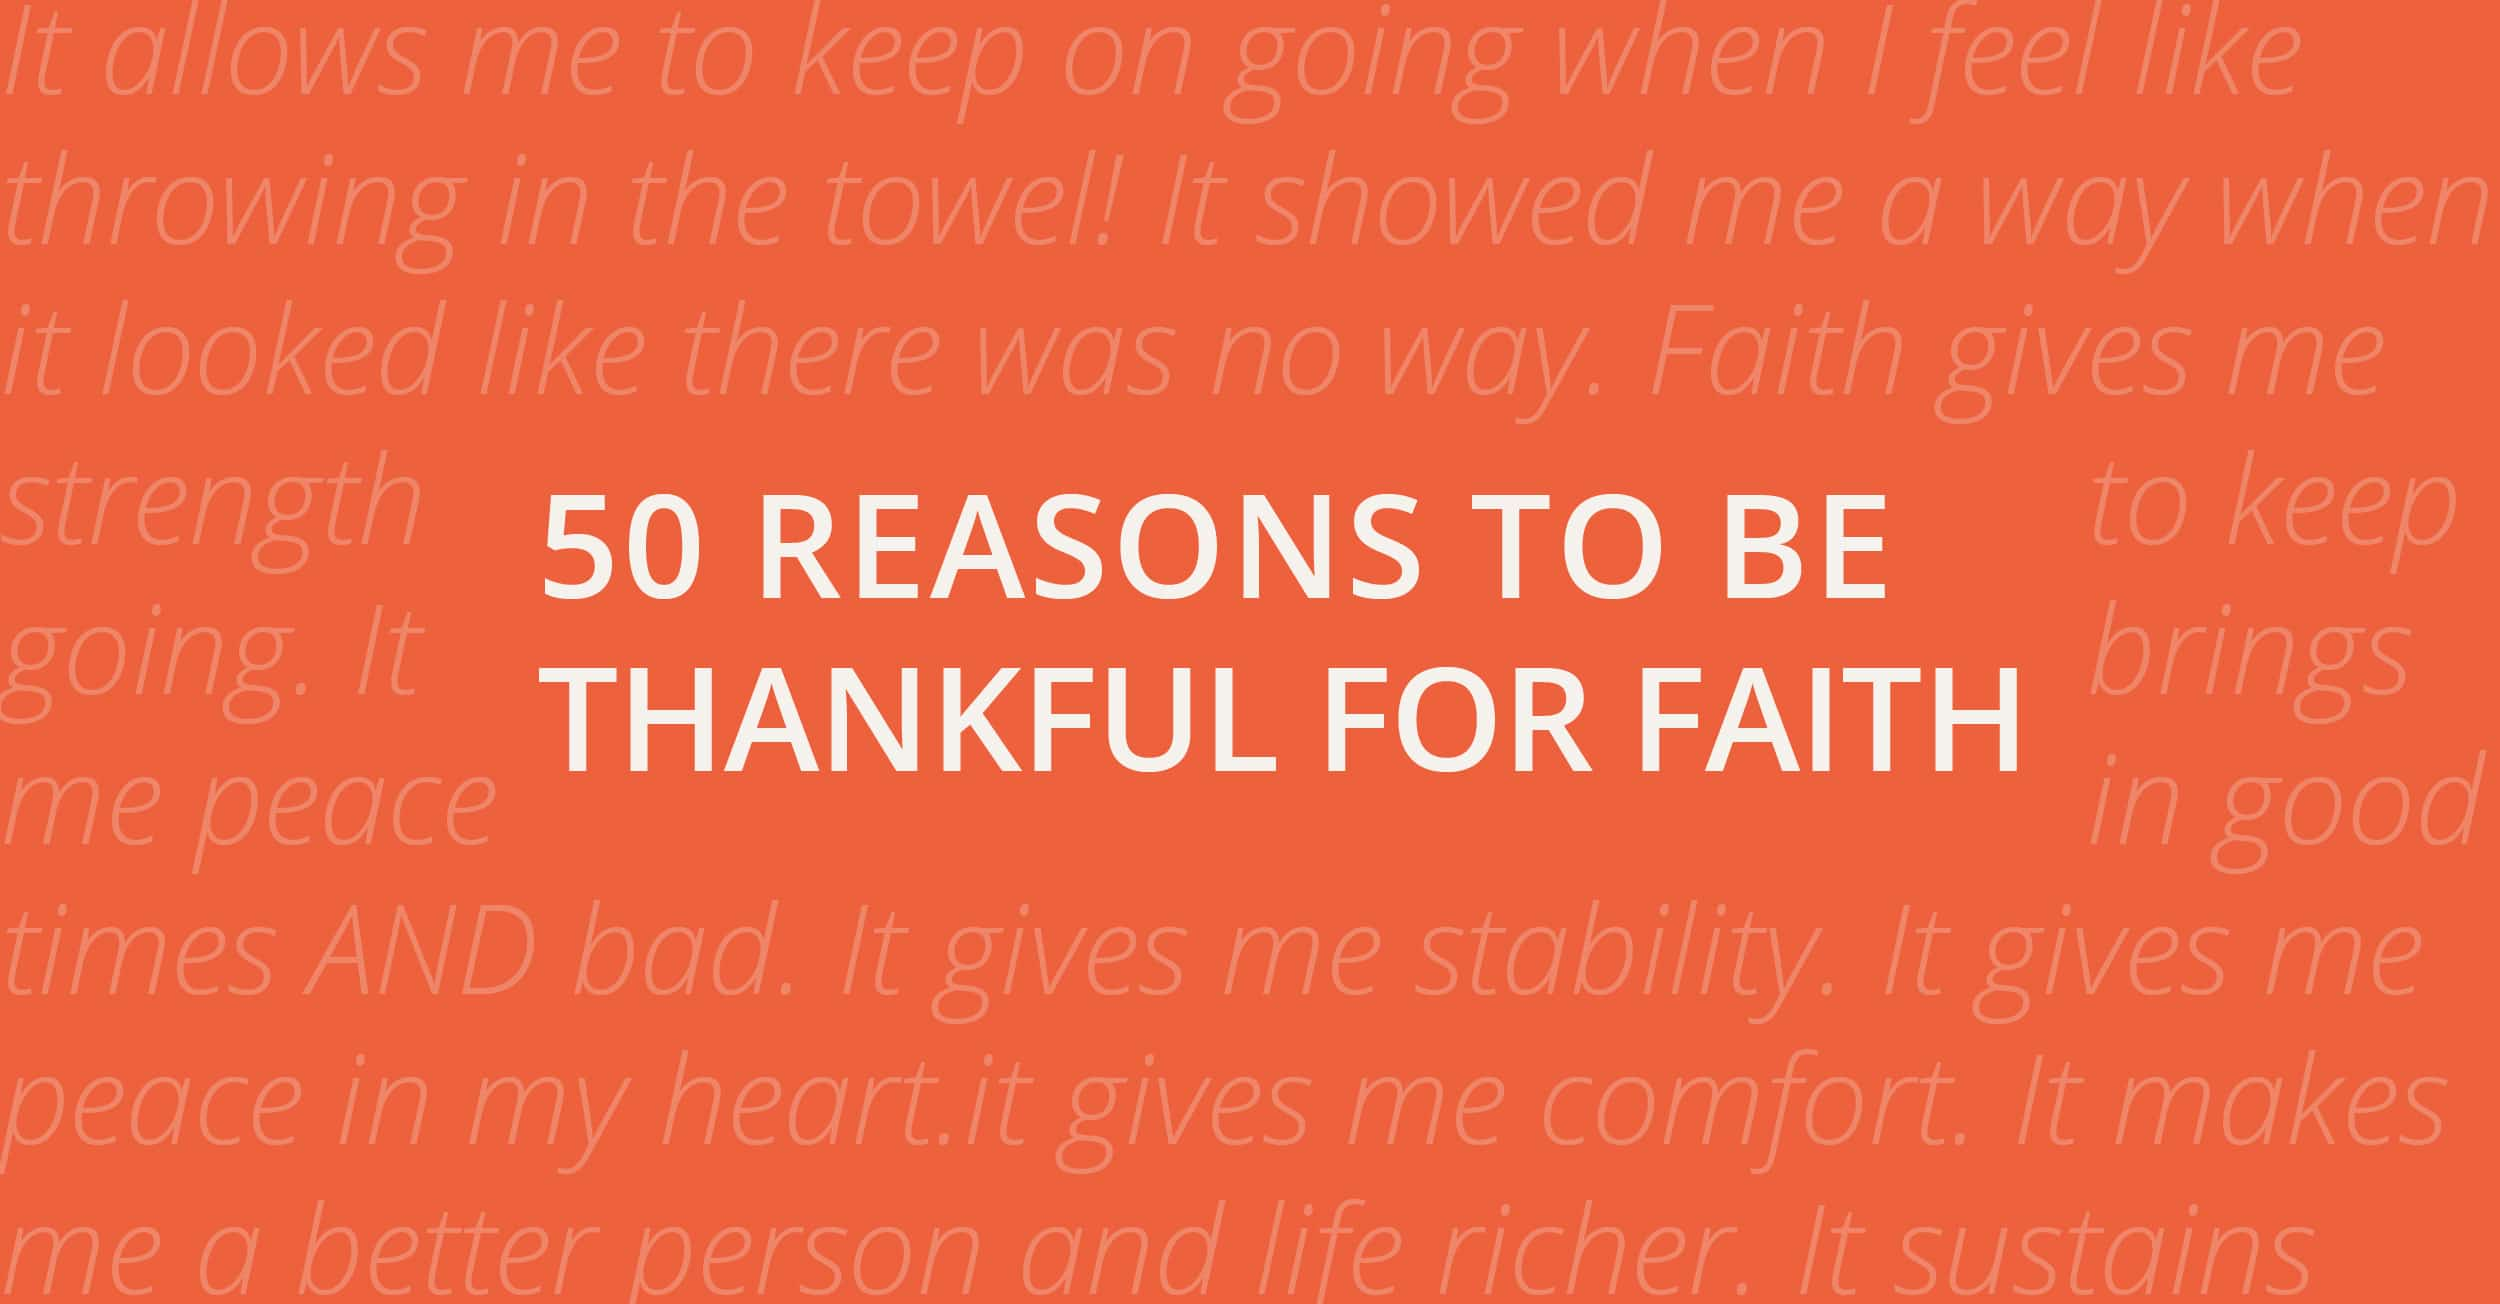 50 Reasons to be Thankful for Faith